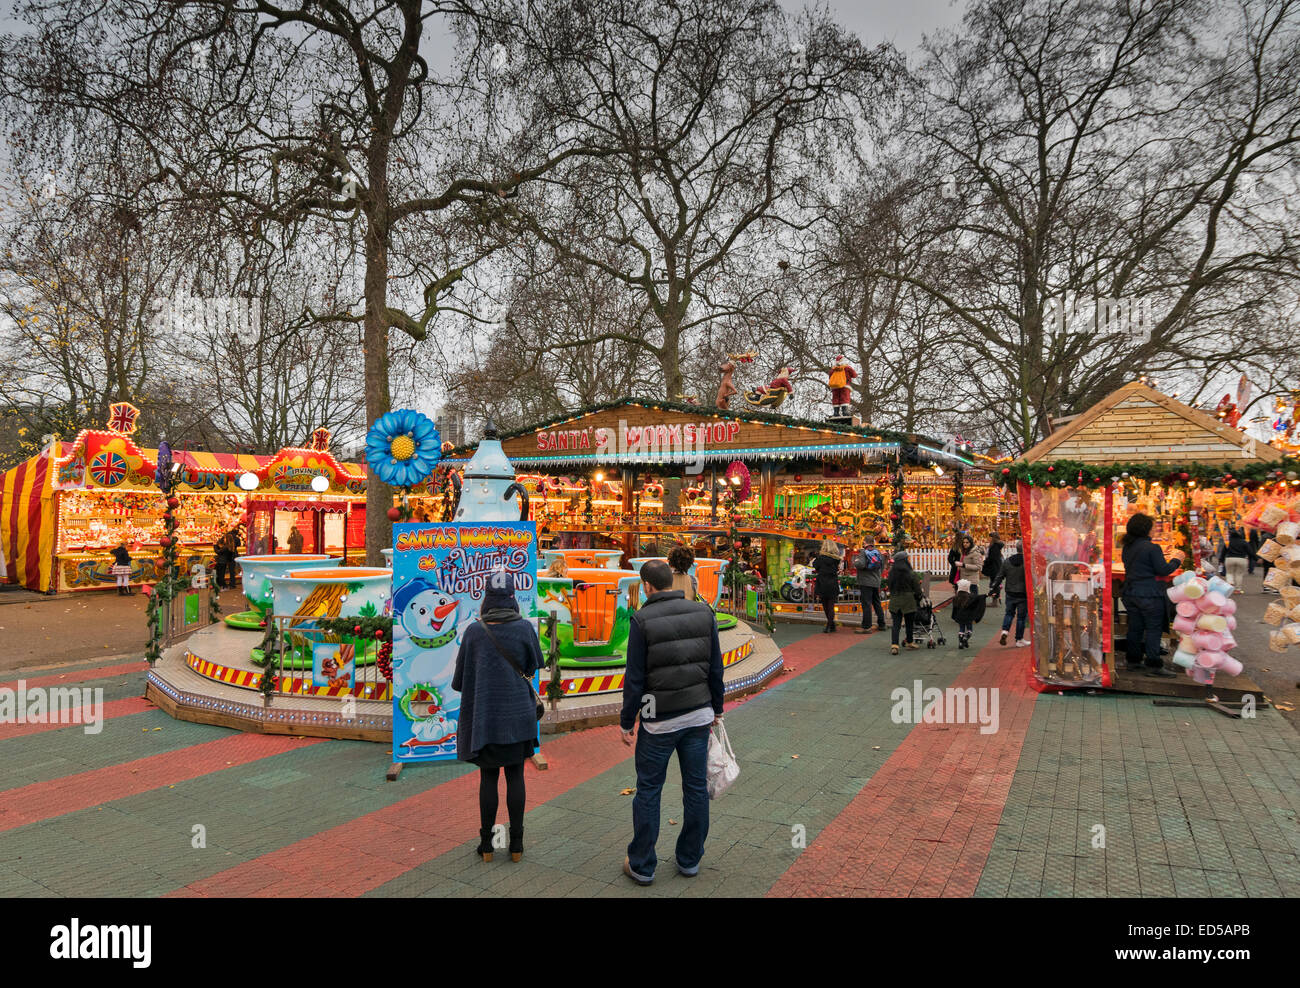 LONDON WINTER WONDERLAND IN HYDE PARK A LANE WITH SANTAS WORKSHOP AND AMUSEMENTS - Stock Image